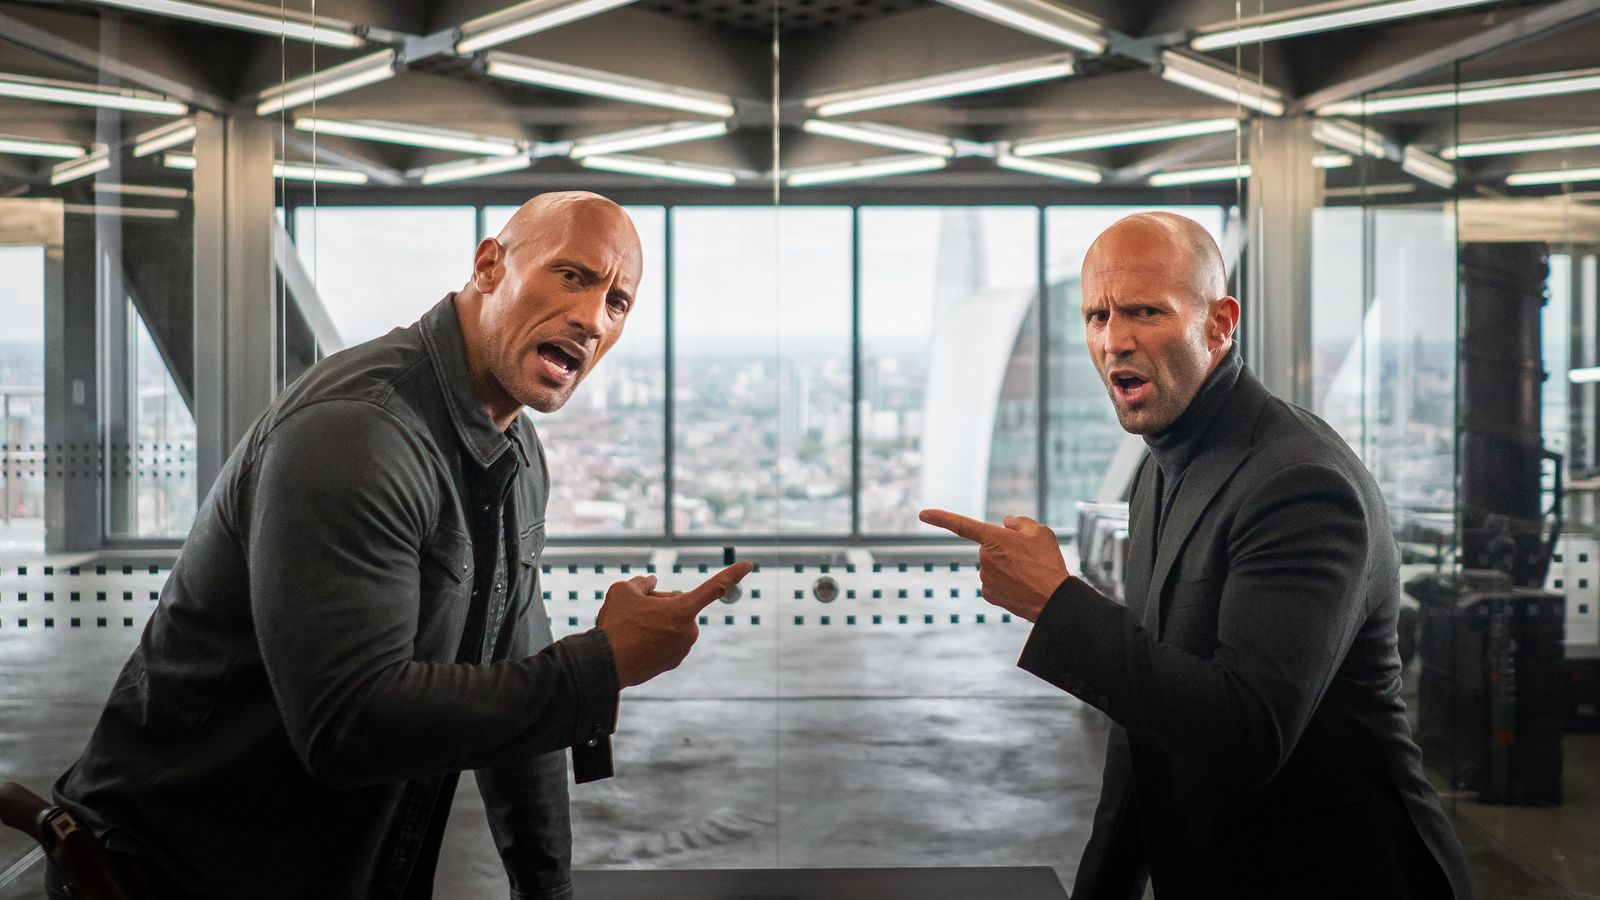 Hobbs & Shaw (2019) - Dwayne Johnson and Jason Statham